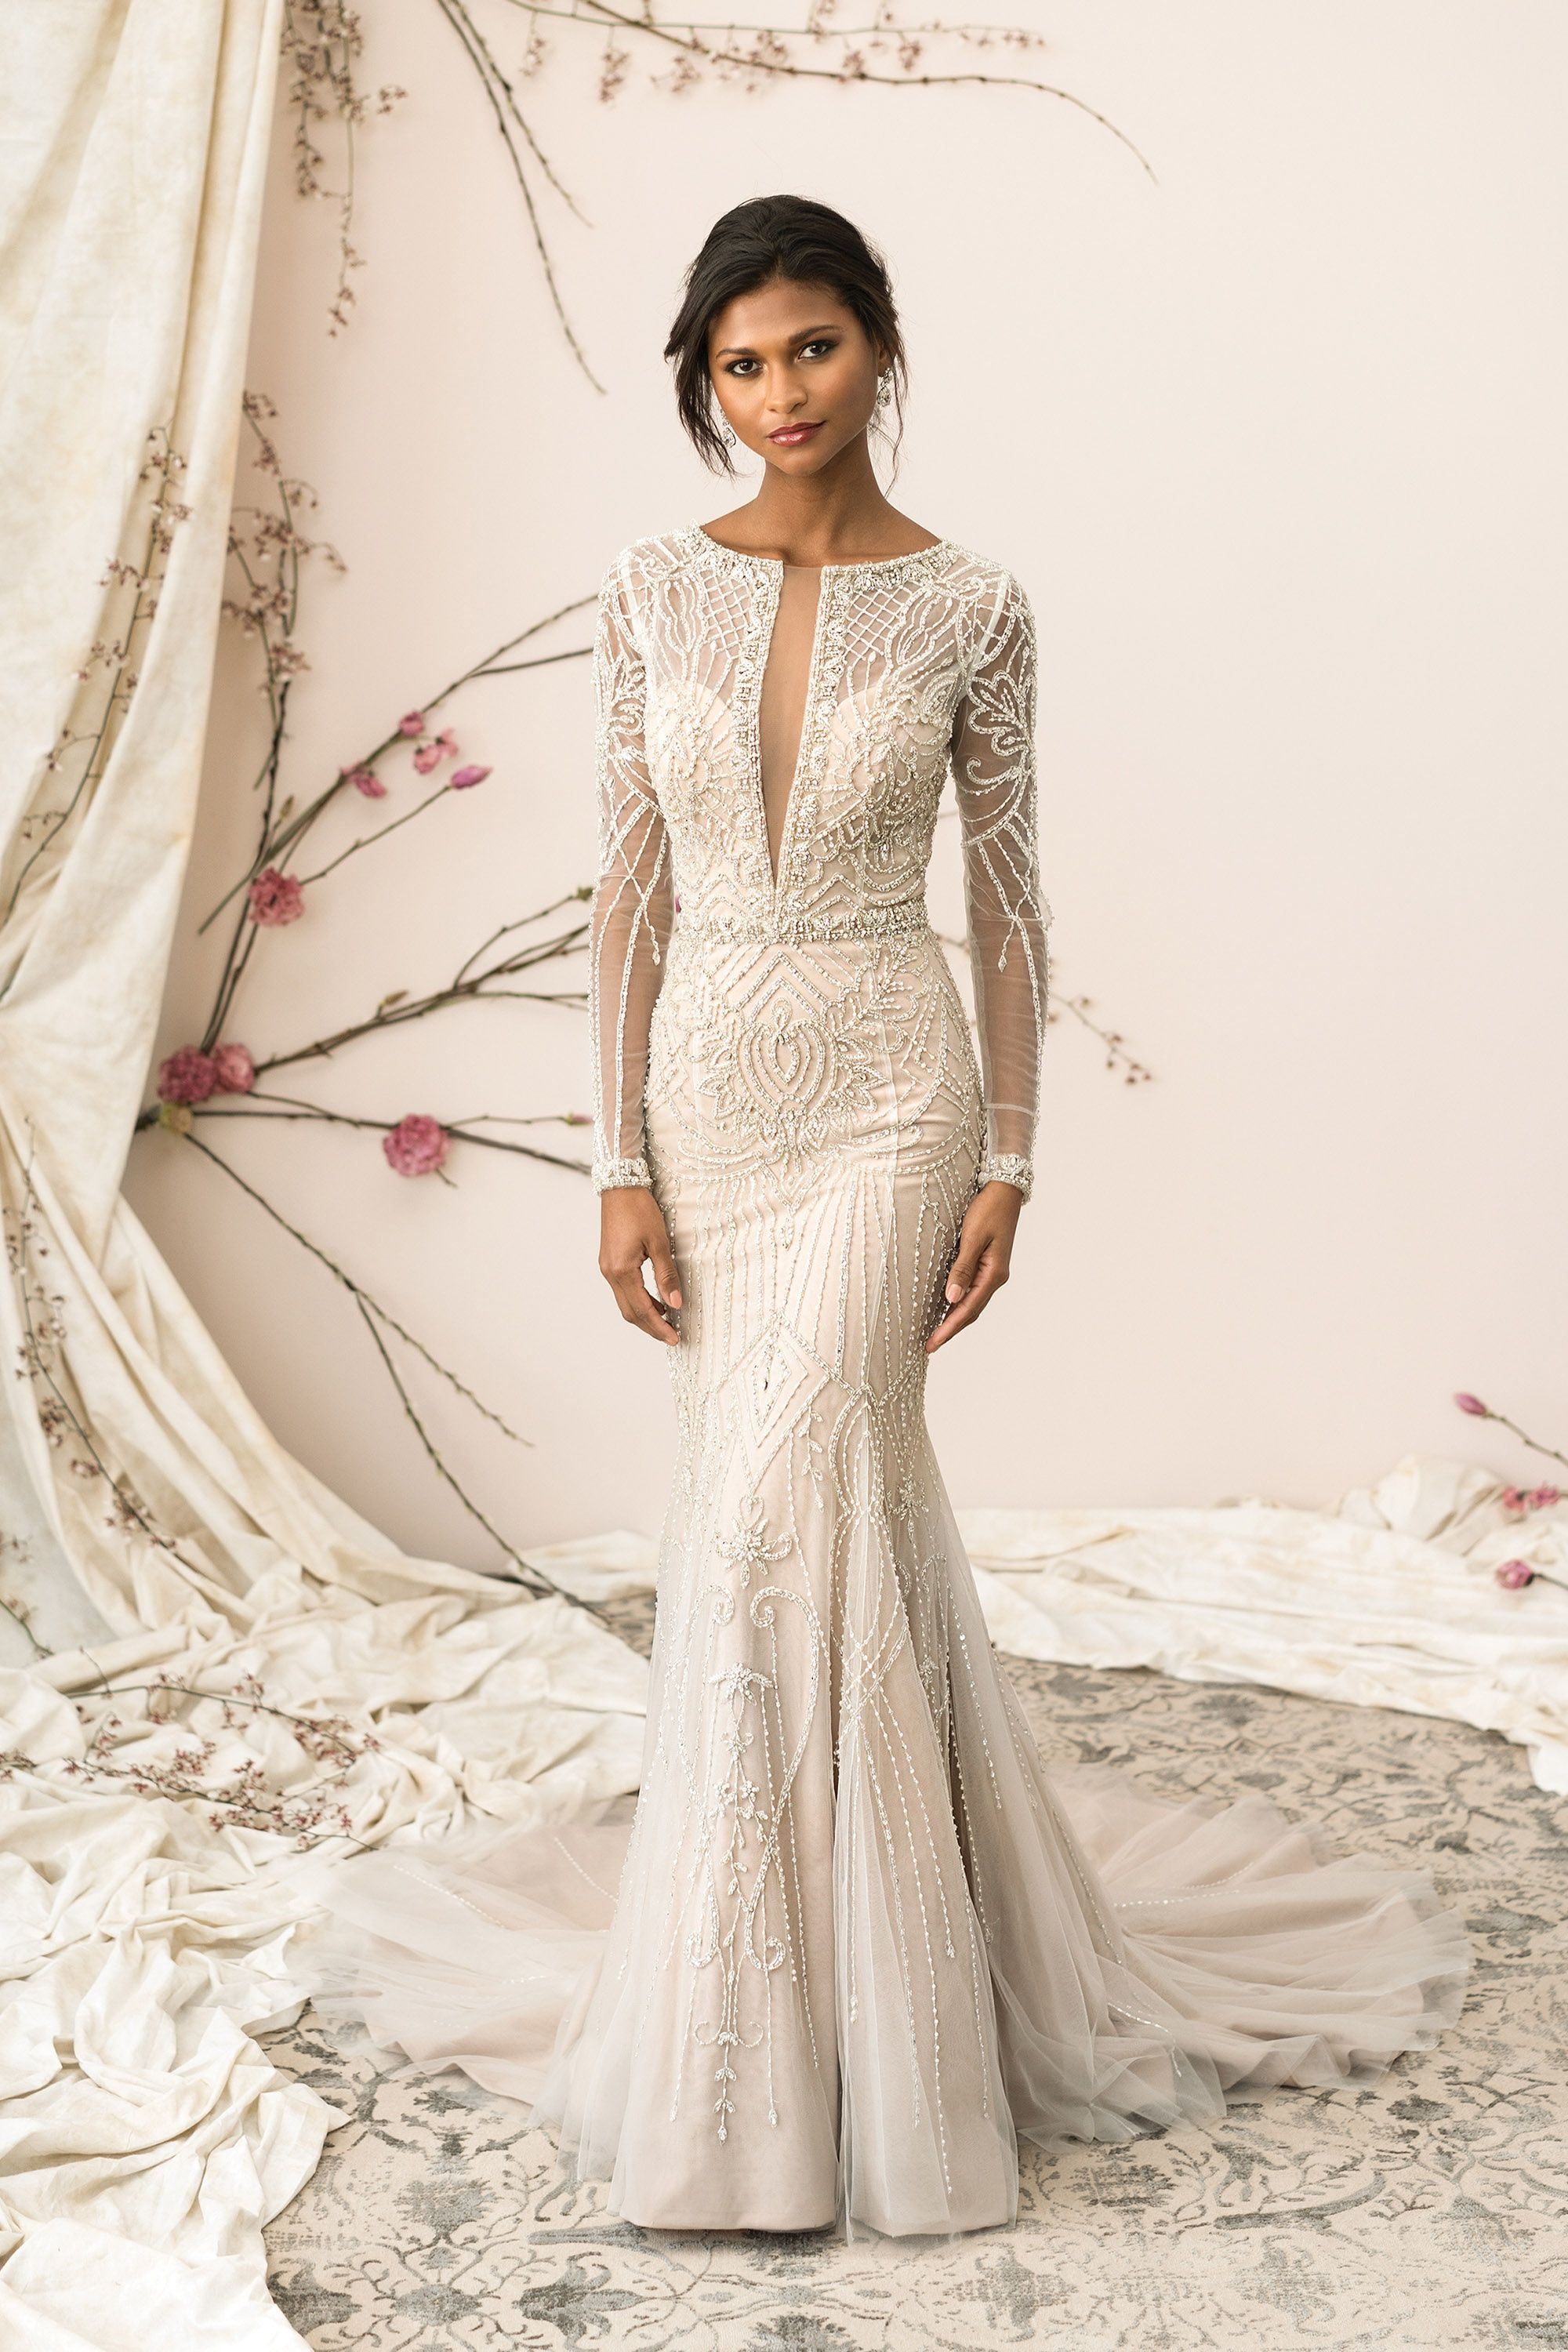 8cb2924bc87a Justin Alexander Signature-Plunging V-Neck Allover Beaded Fit and Flare Gown  The Persnickety Bride will have Justin Alexander Dresses in stock in  December ...